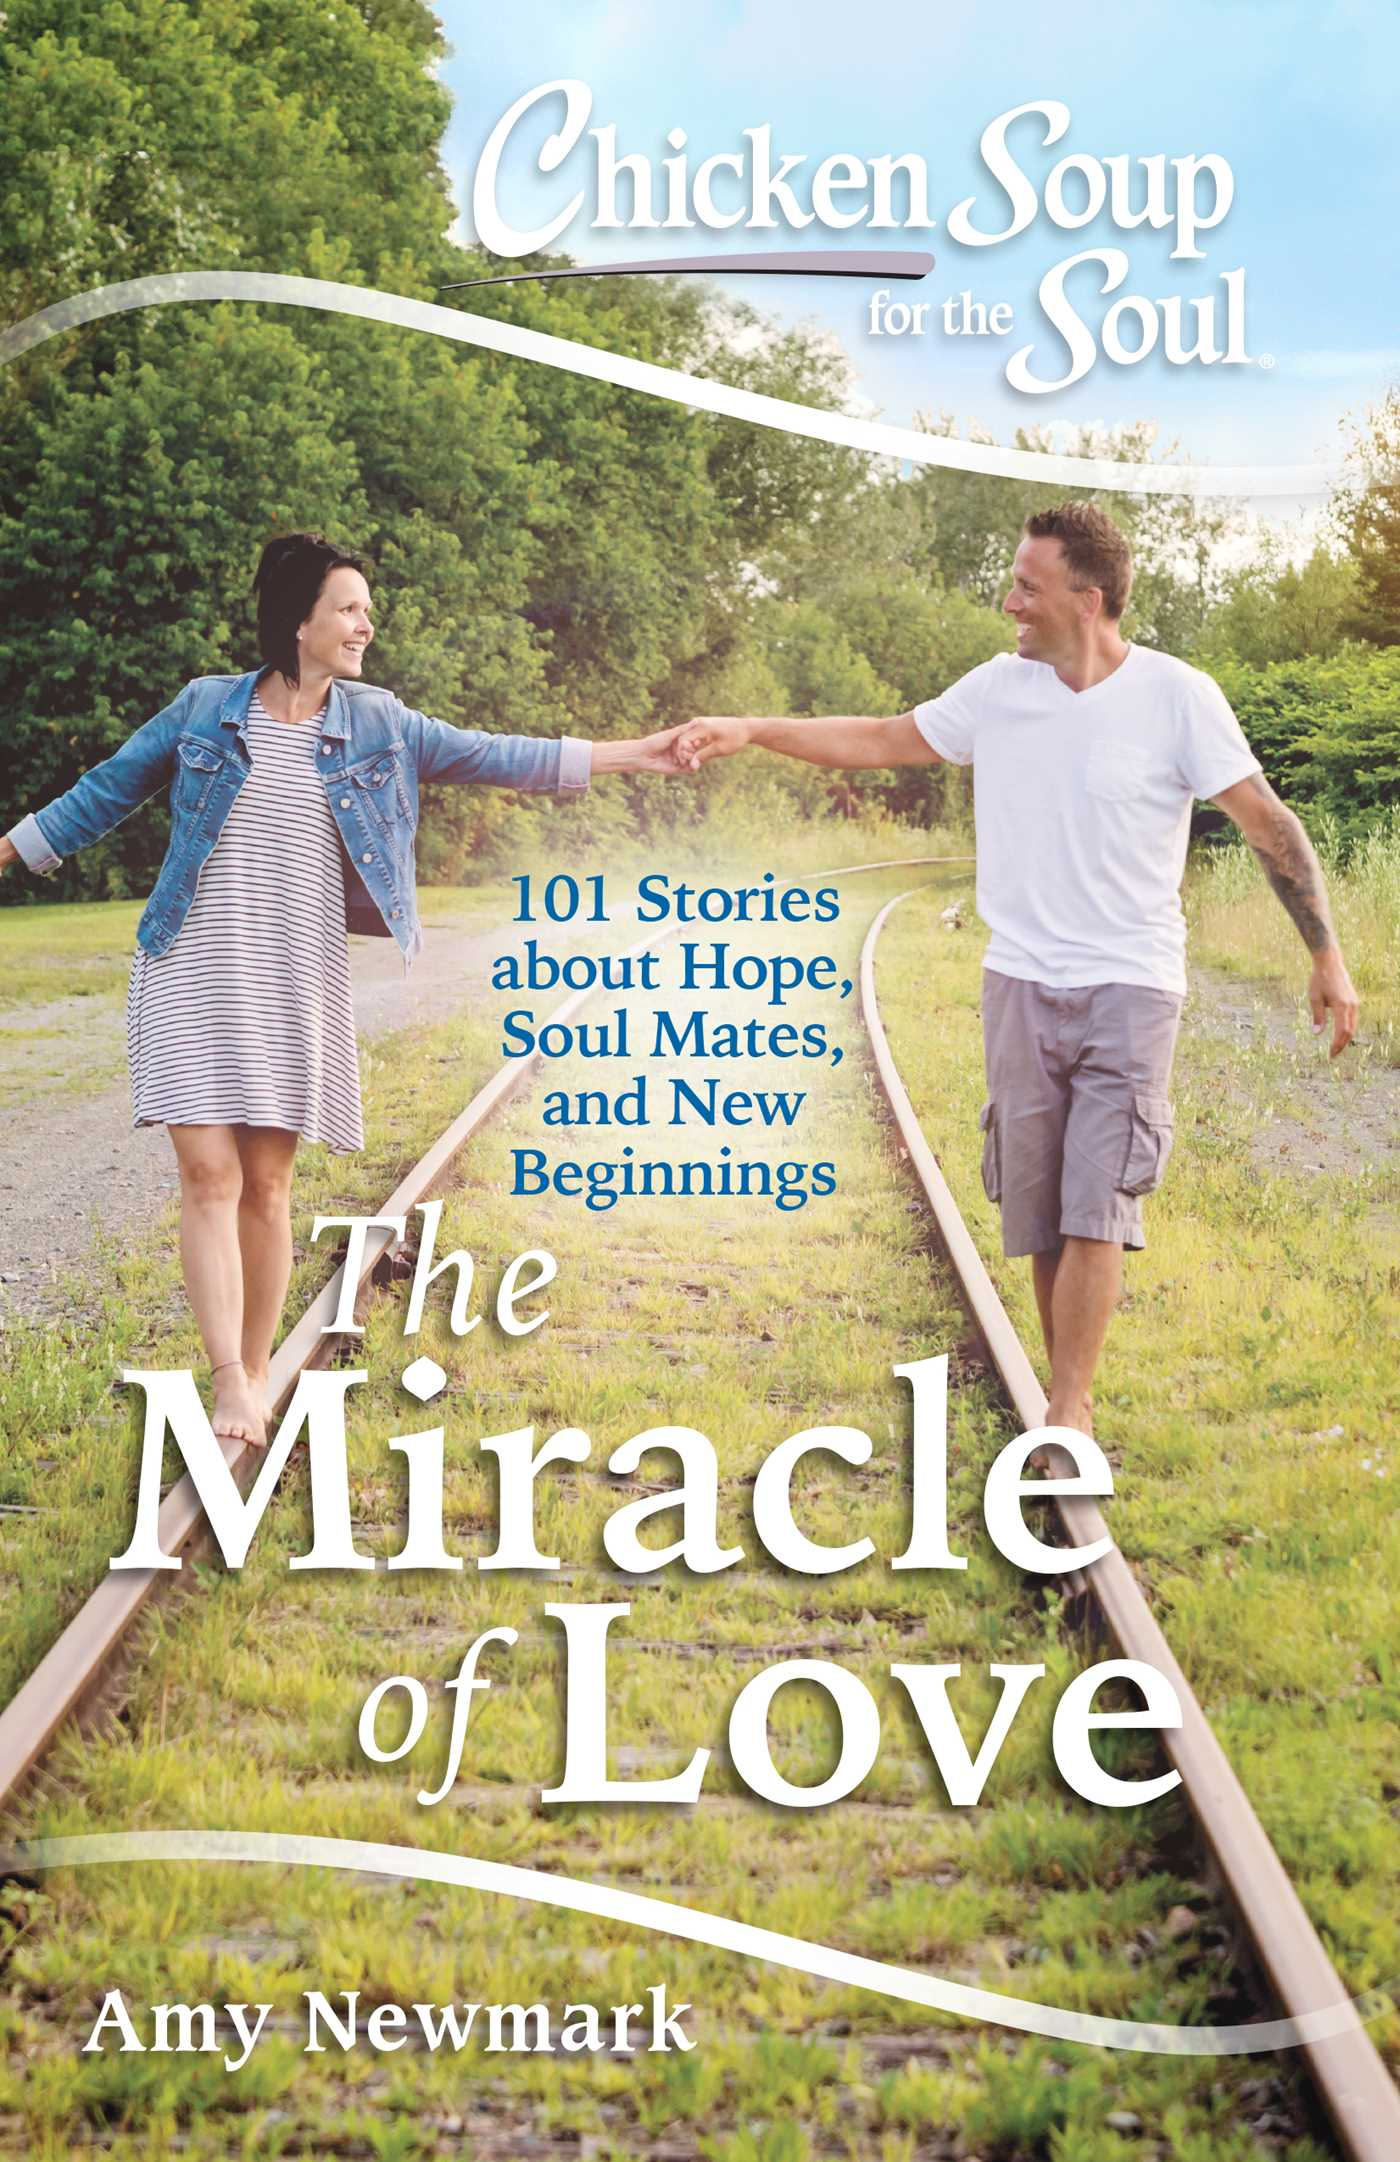 Chicken soup for the soul the miracle of love 9781611599800 hr